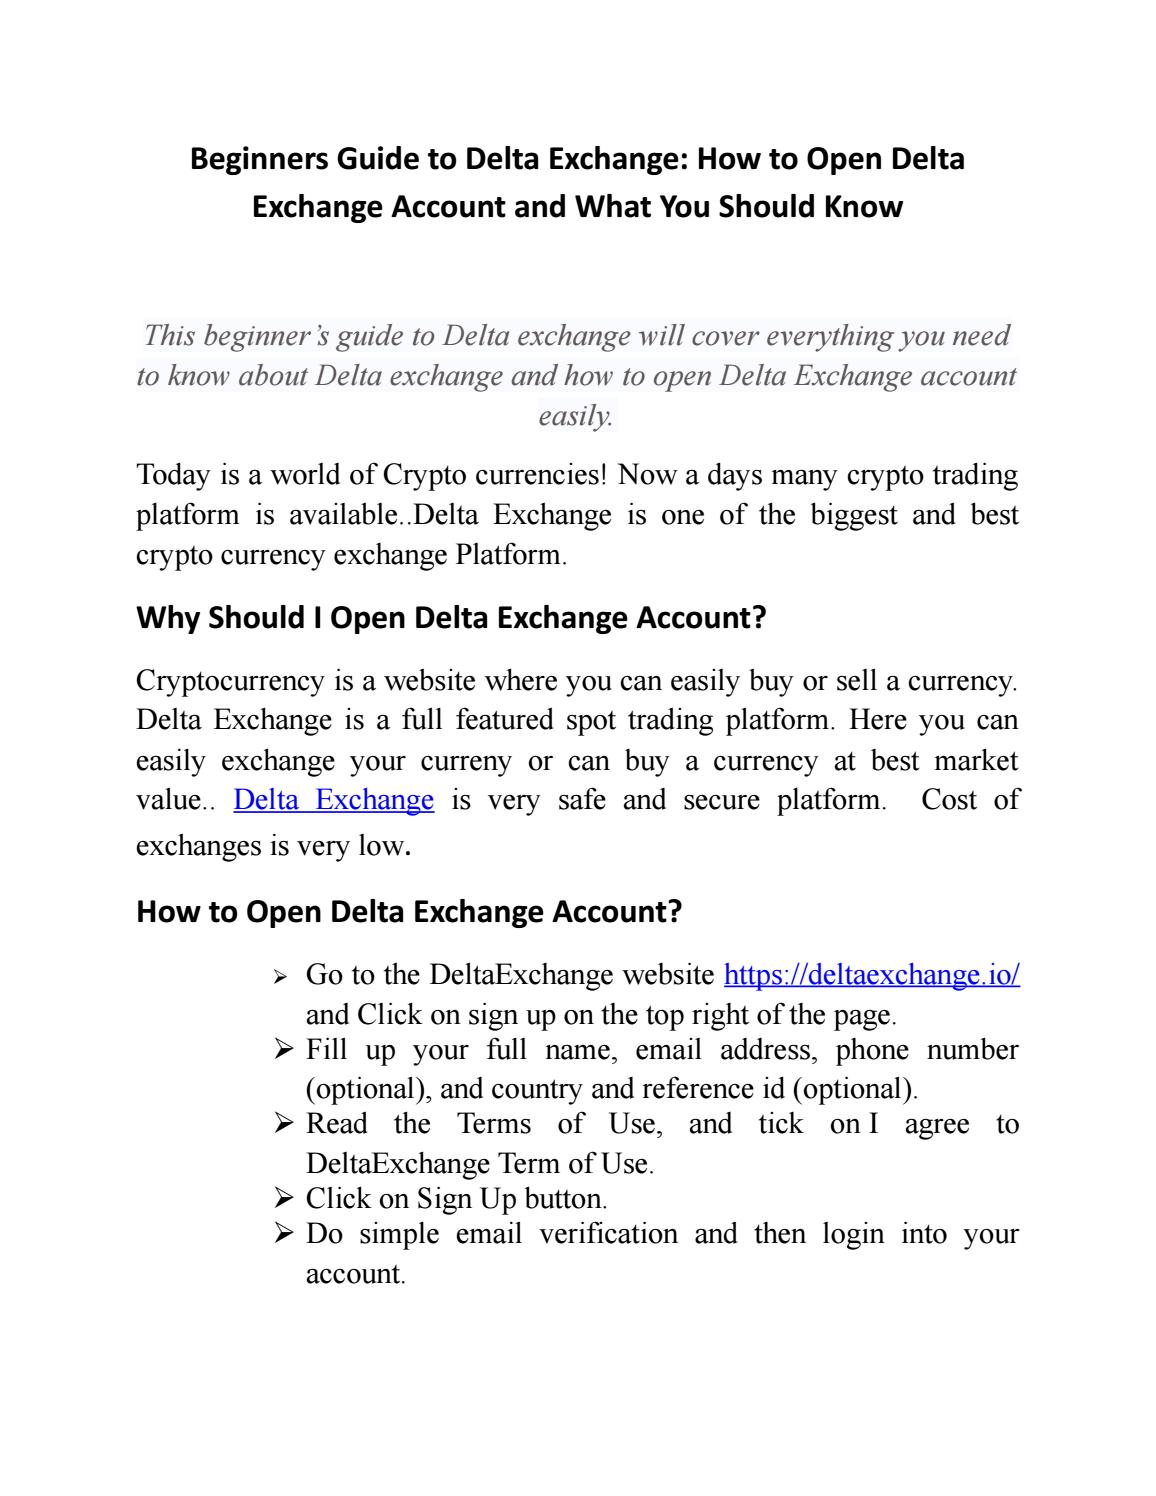 how to open a cryptocurrency exchange account